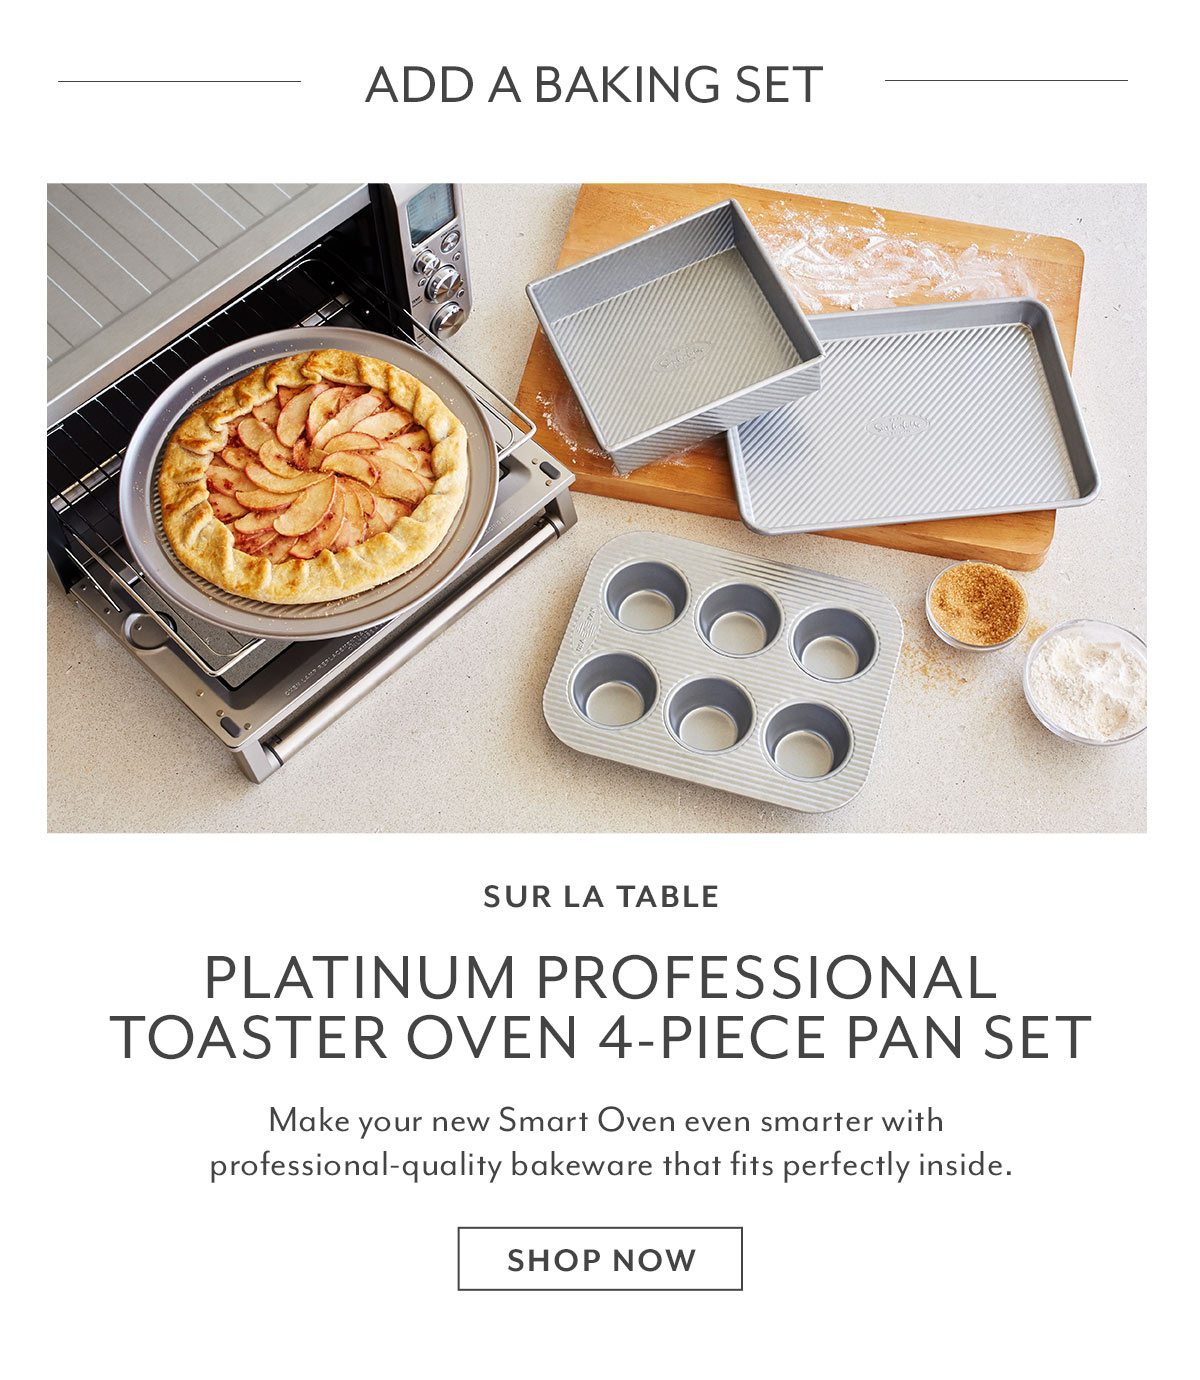 Toaster Oven 4-PC Pan Set